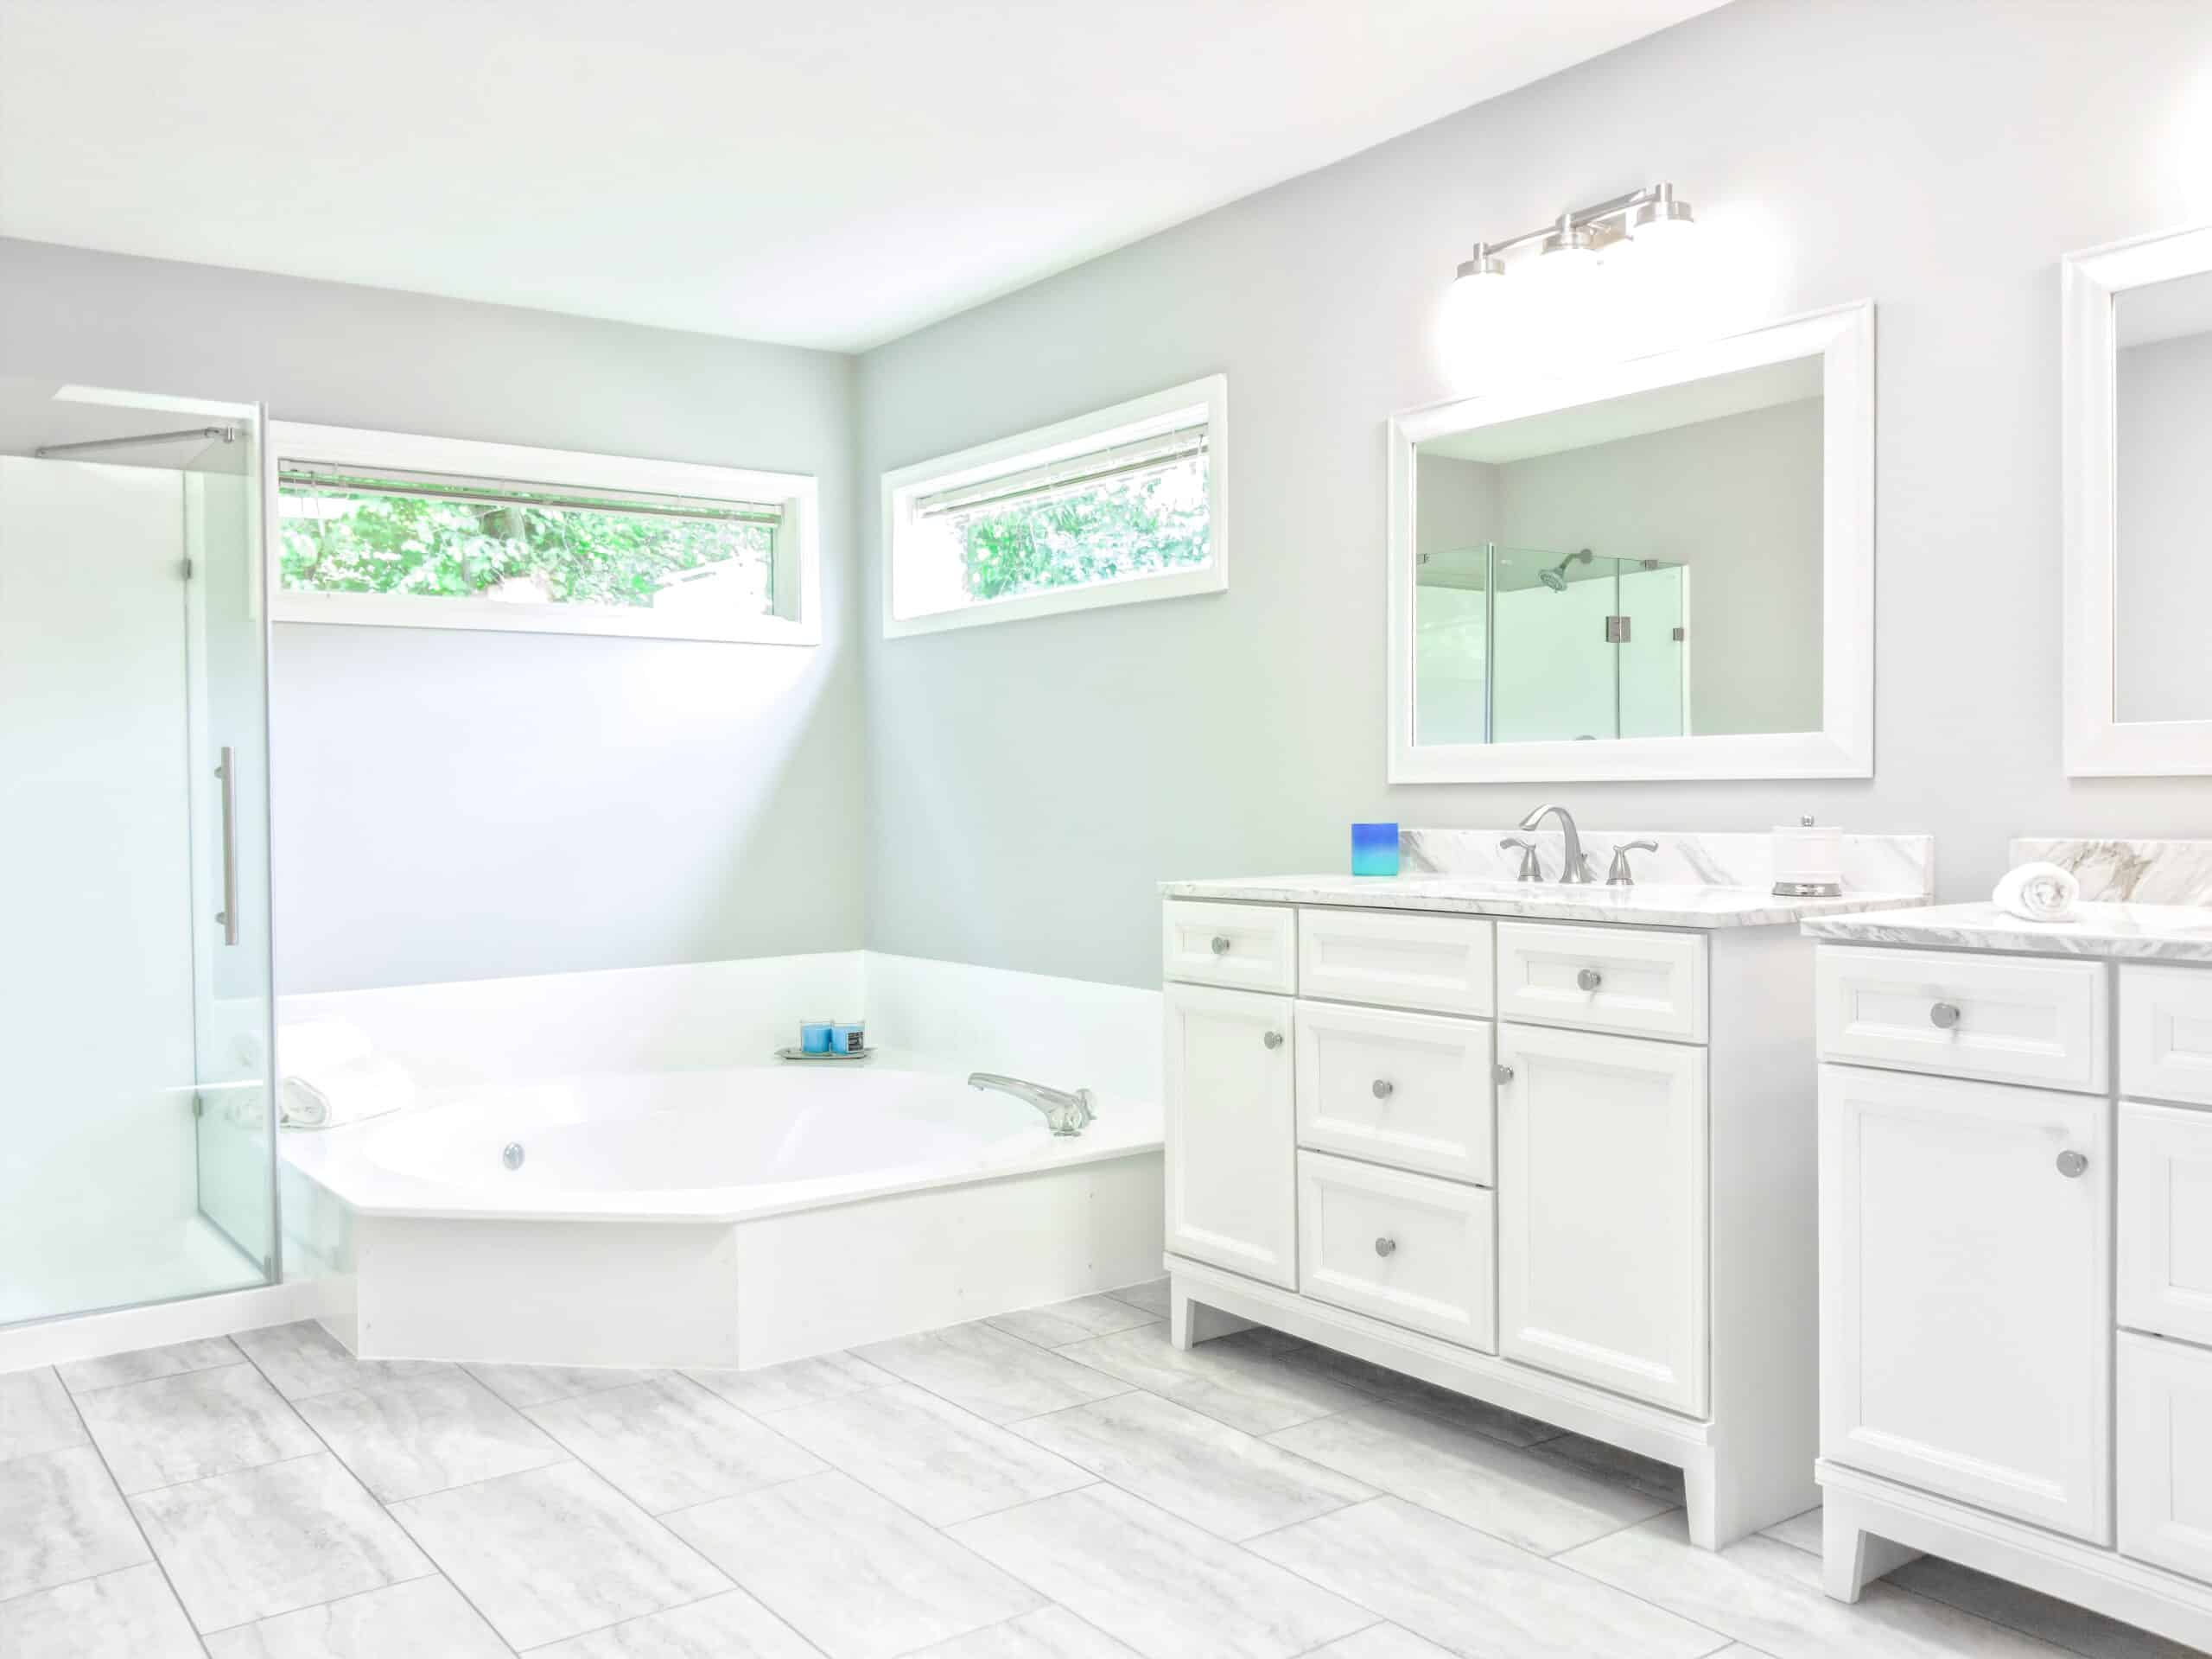 Hot Tub vs. Jetted Bathtub: Which Is Better?